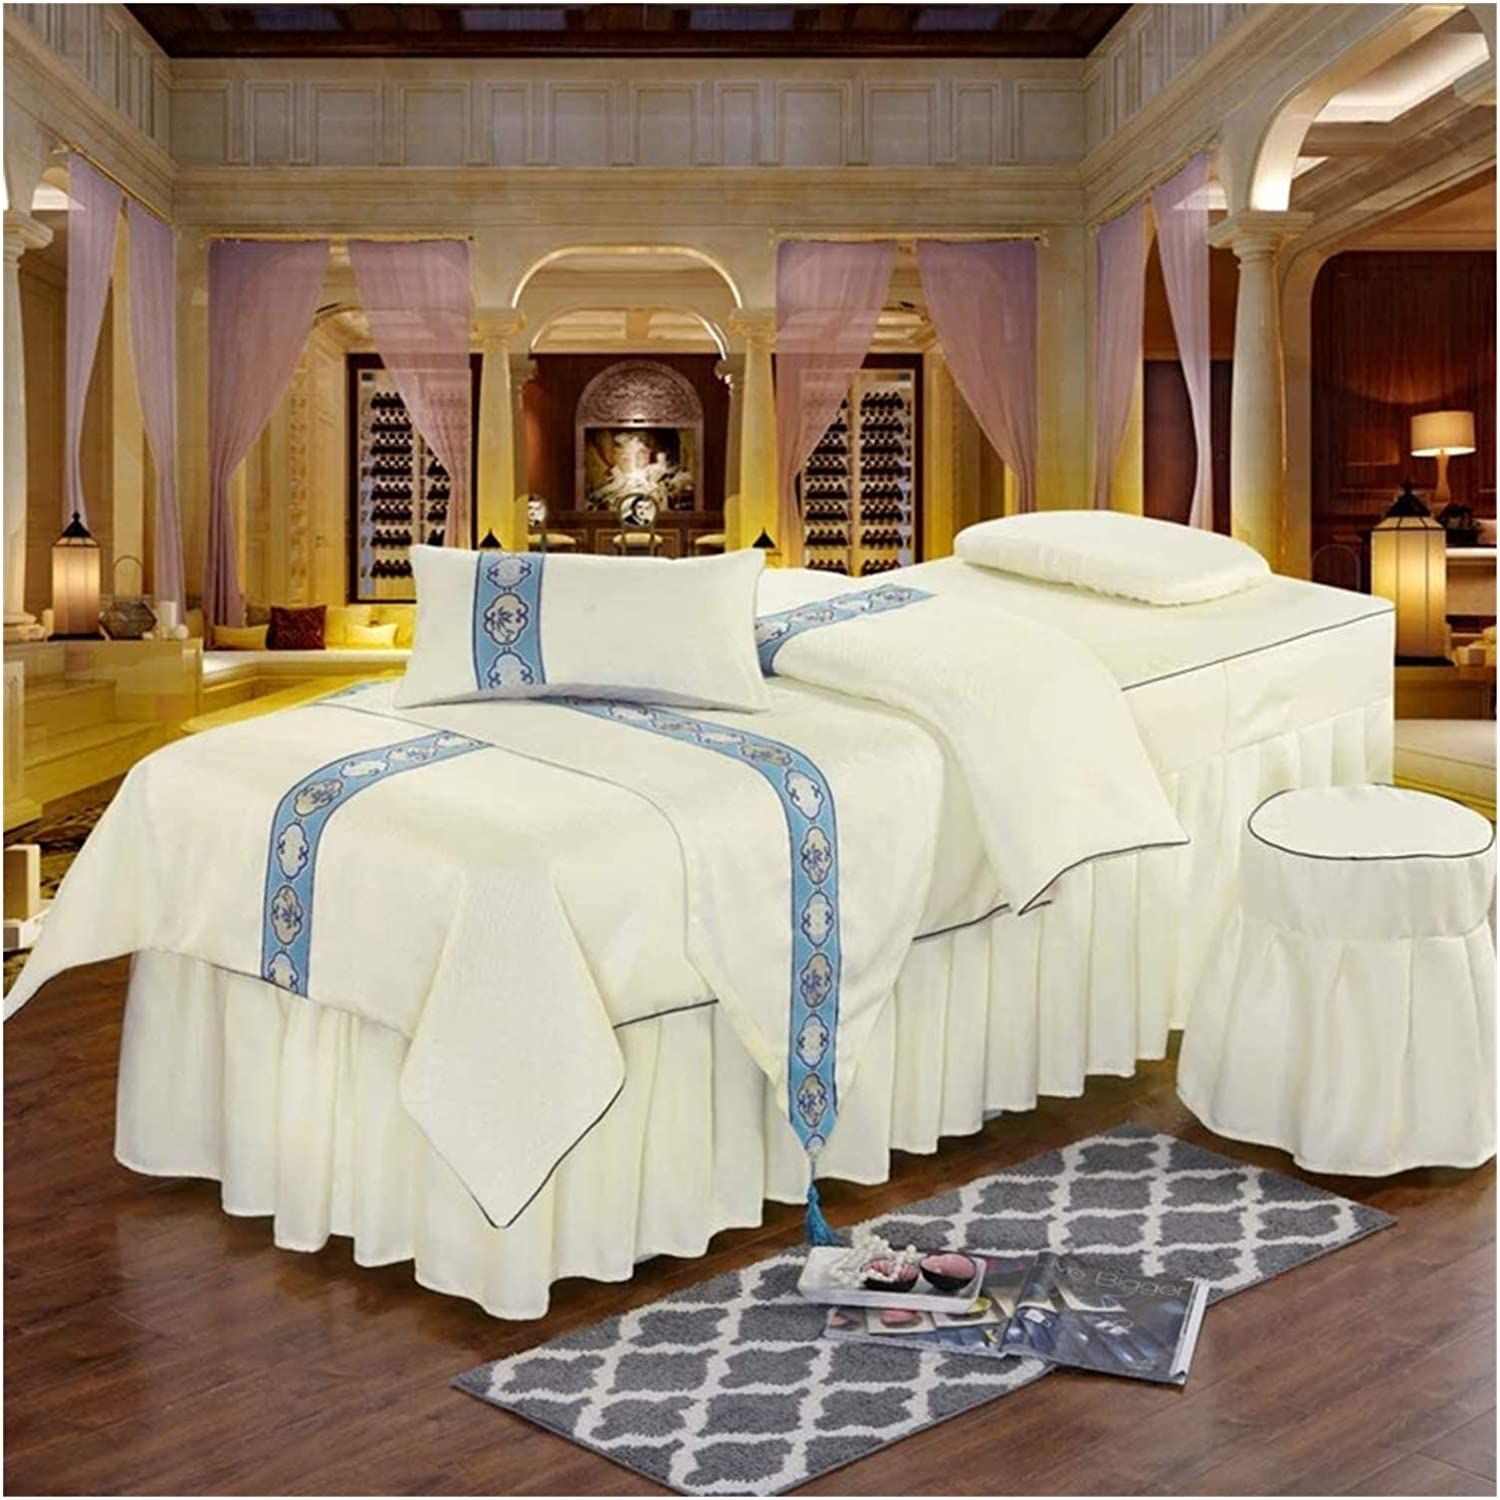 ZHANGYN Massage Table Sheet Sets Spa Beauty Pure Ranking TOP1 Bed Translated Colo Cover